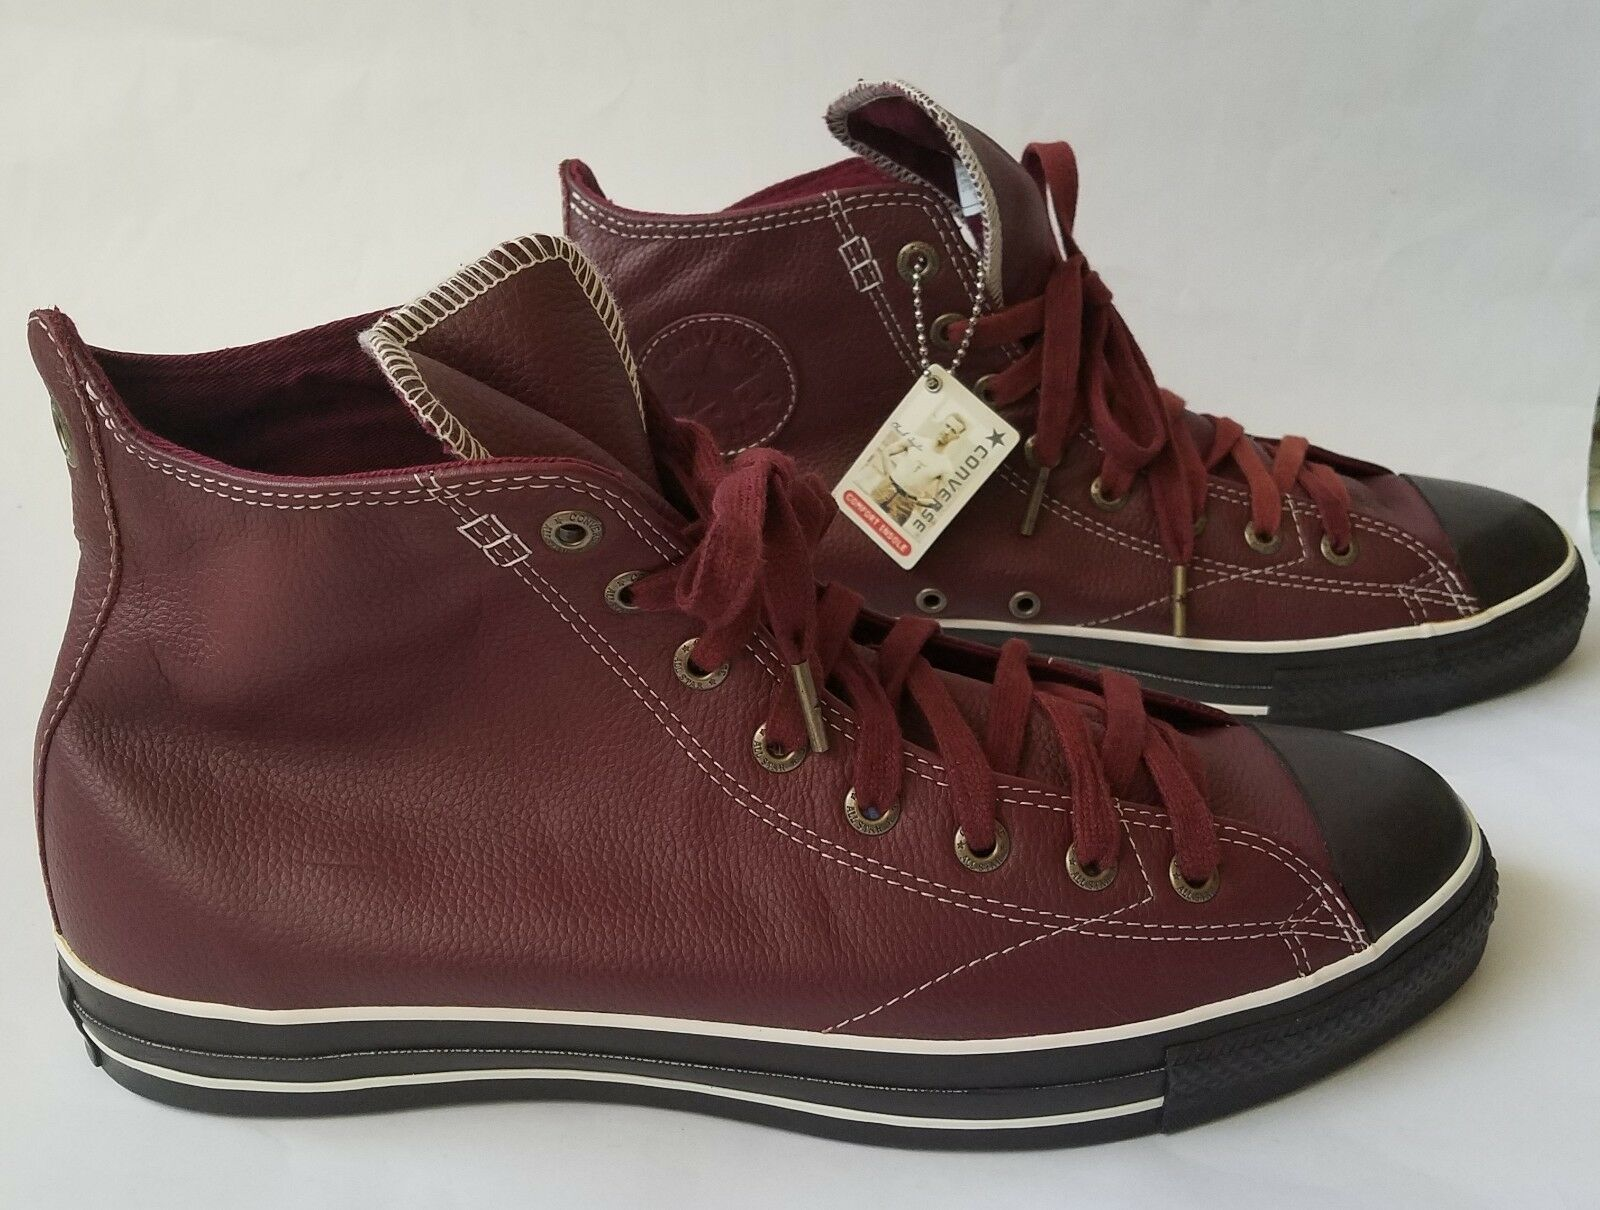 CONVERSE ALL STAR CHUCK TAYLOR European hi Hommes Chaussures Cranberry AJ855 taille 13 NEUF